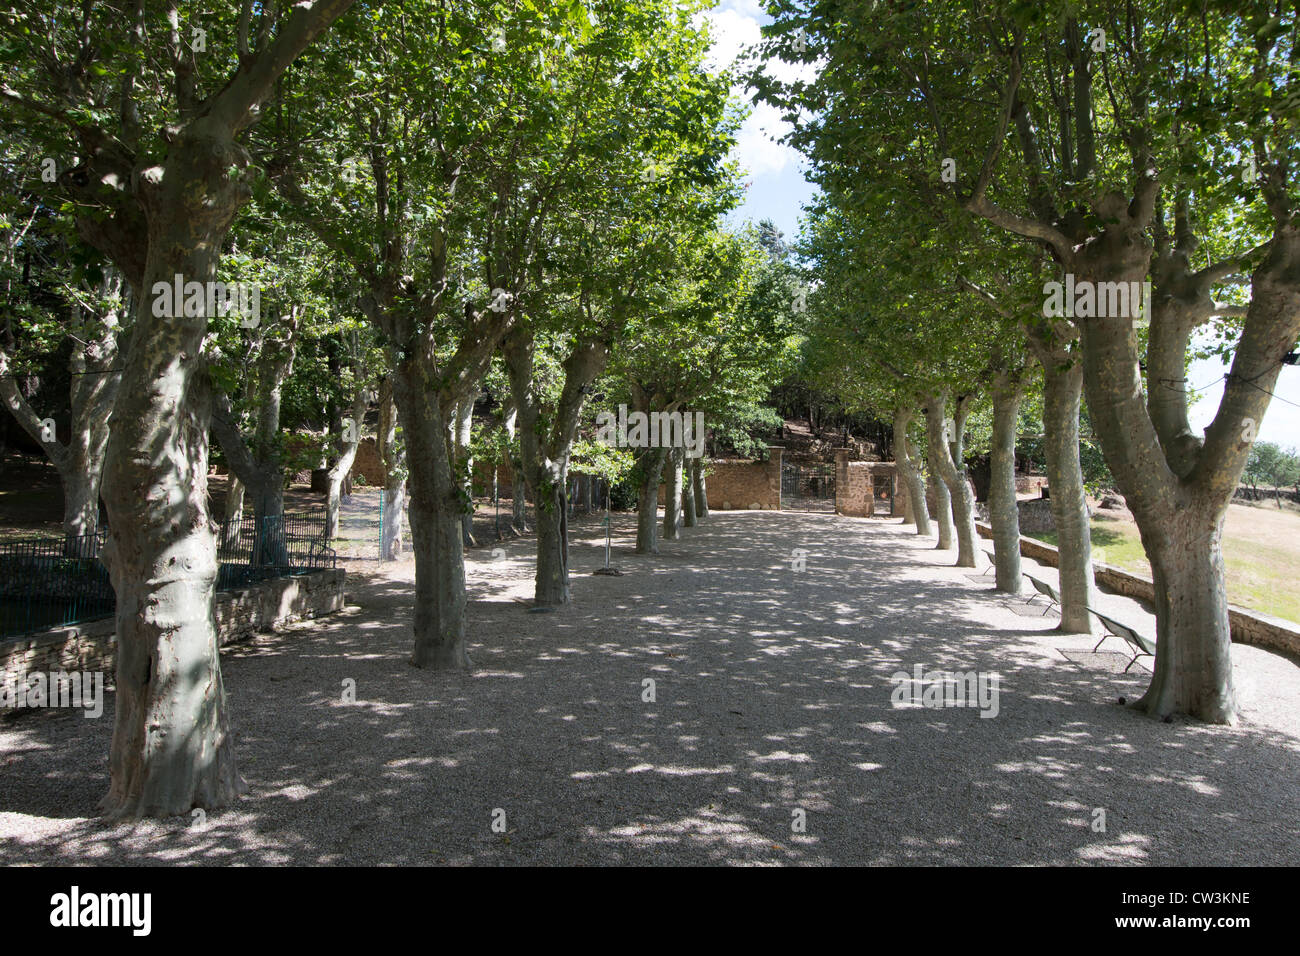 avenue of plane trees in grounds of Prieure St-Michel-de-Grandmont a 13th century priory above the Languedoc Plain - Stock Image